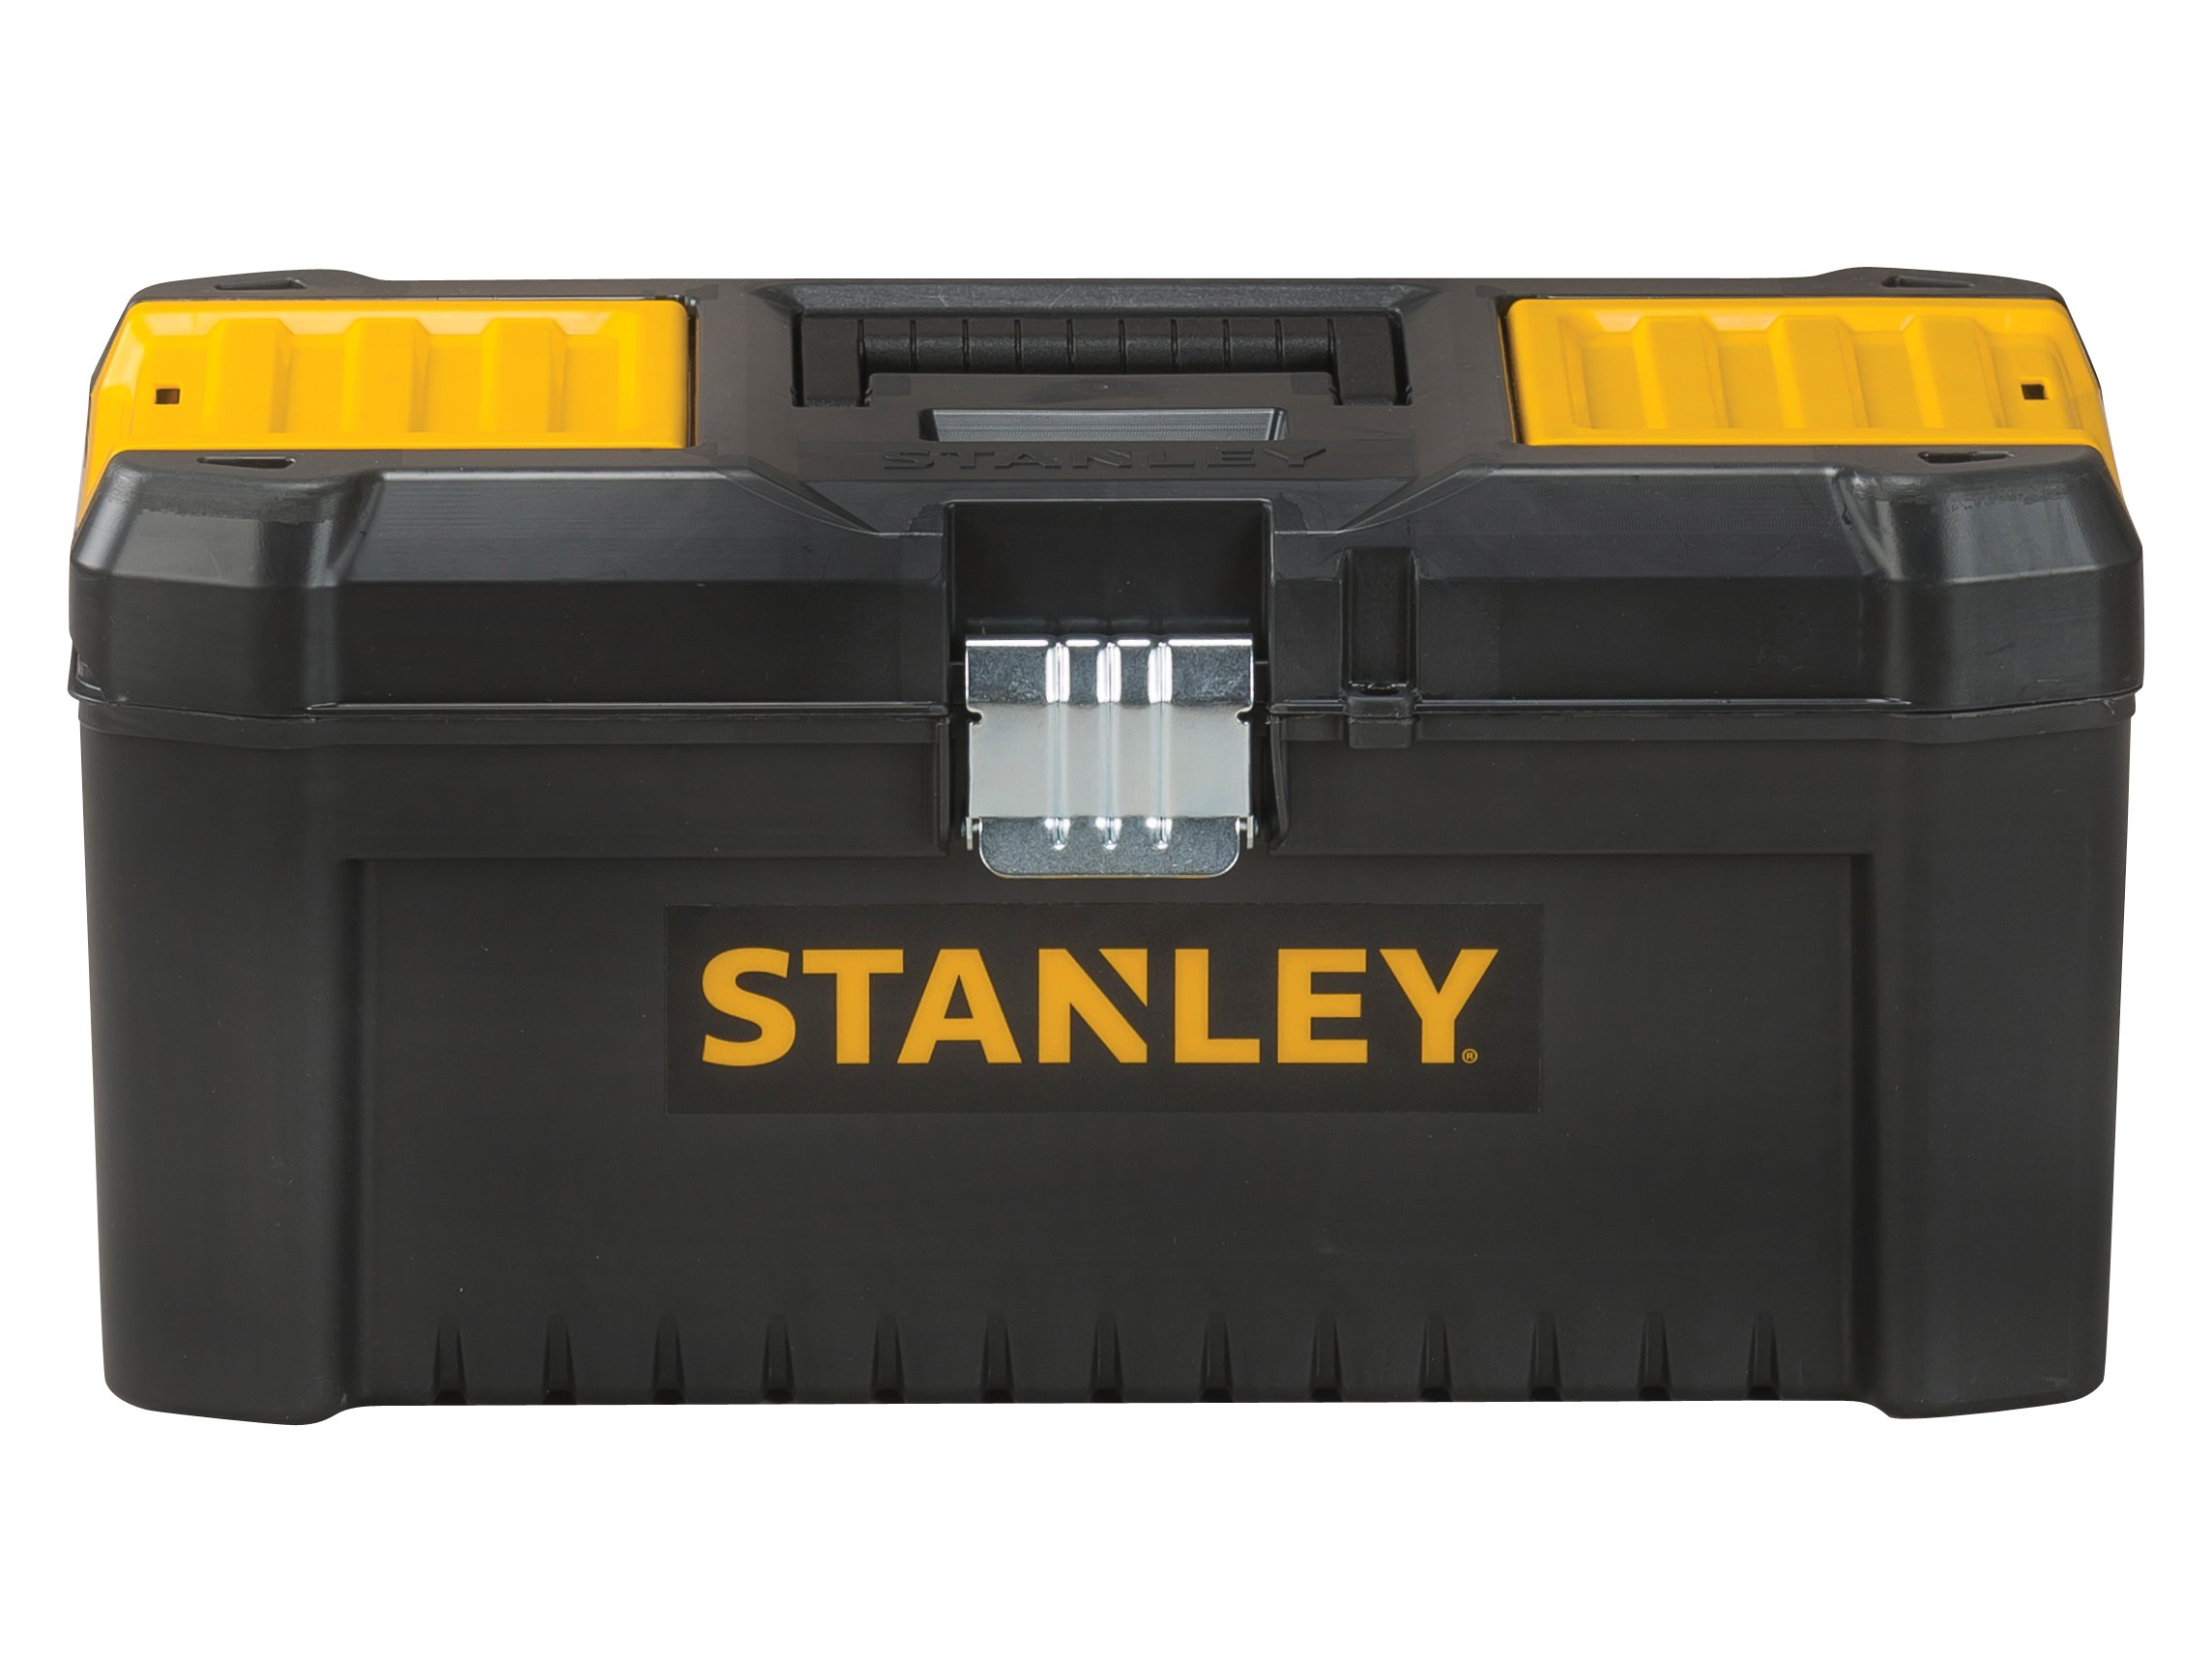 Stanley Tools Basic Toolbox with Organiser Top & Geometric Lock Latches | 16in by Stanley Tools (Image #4)